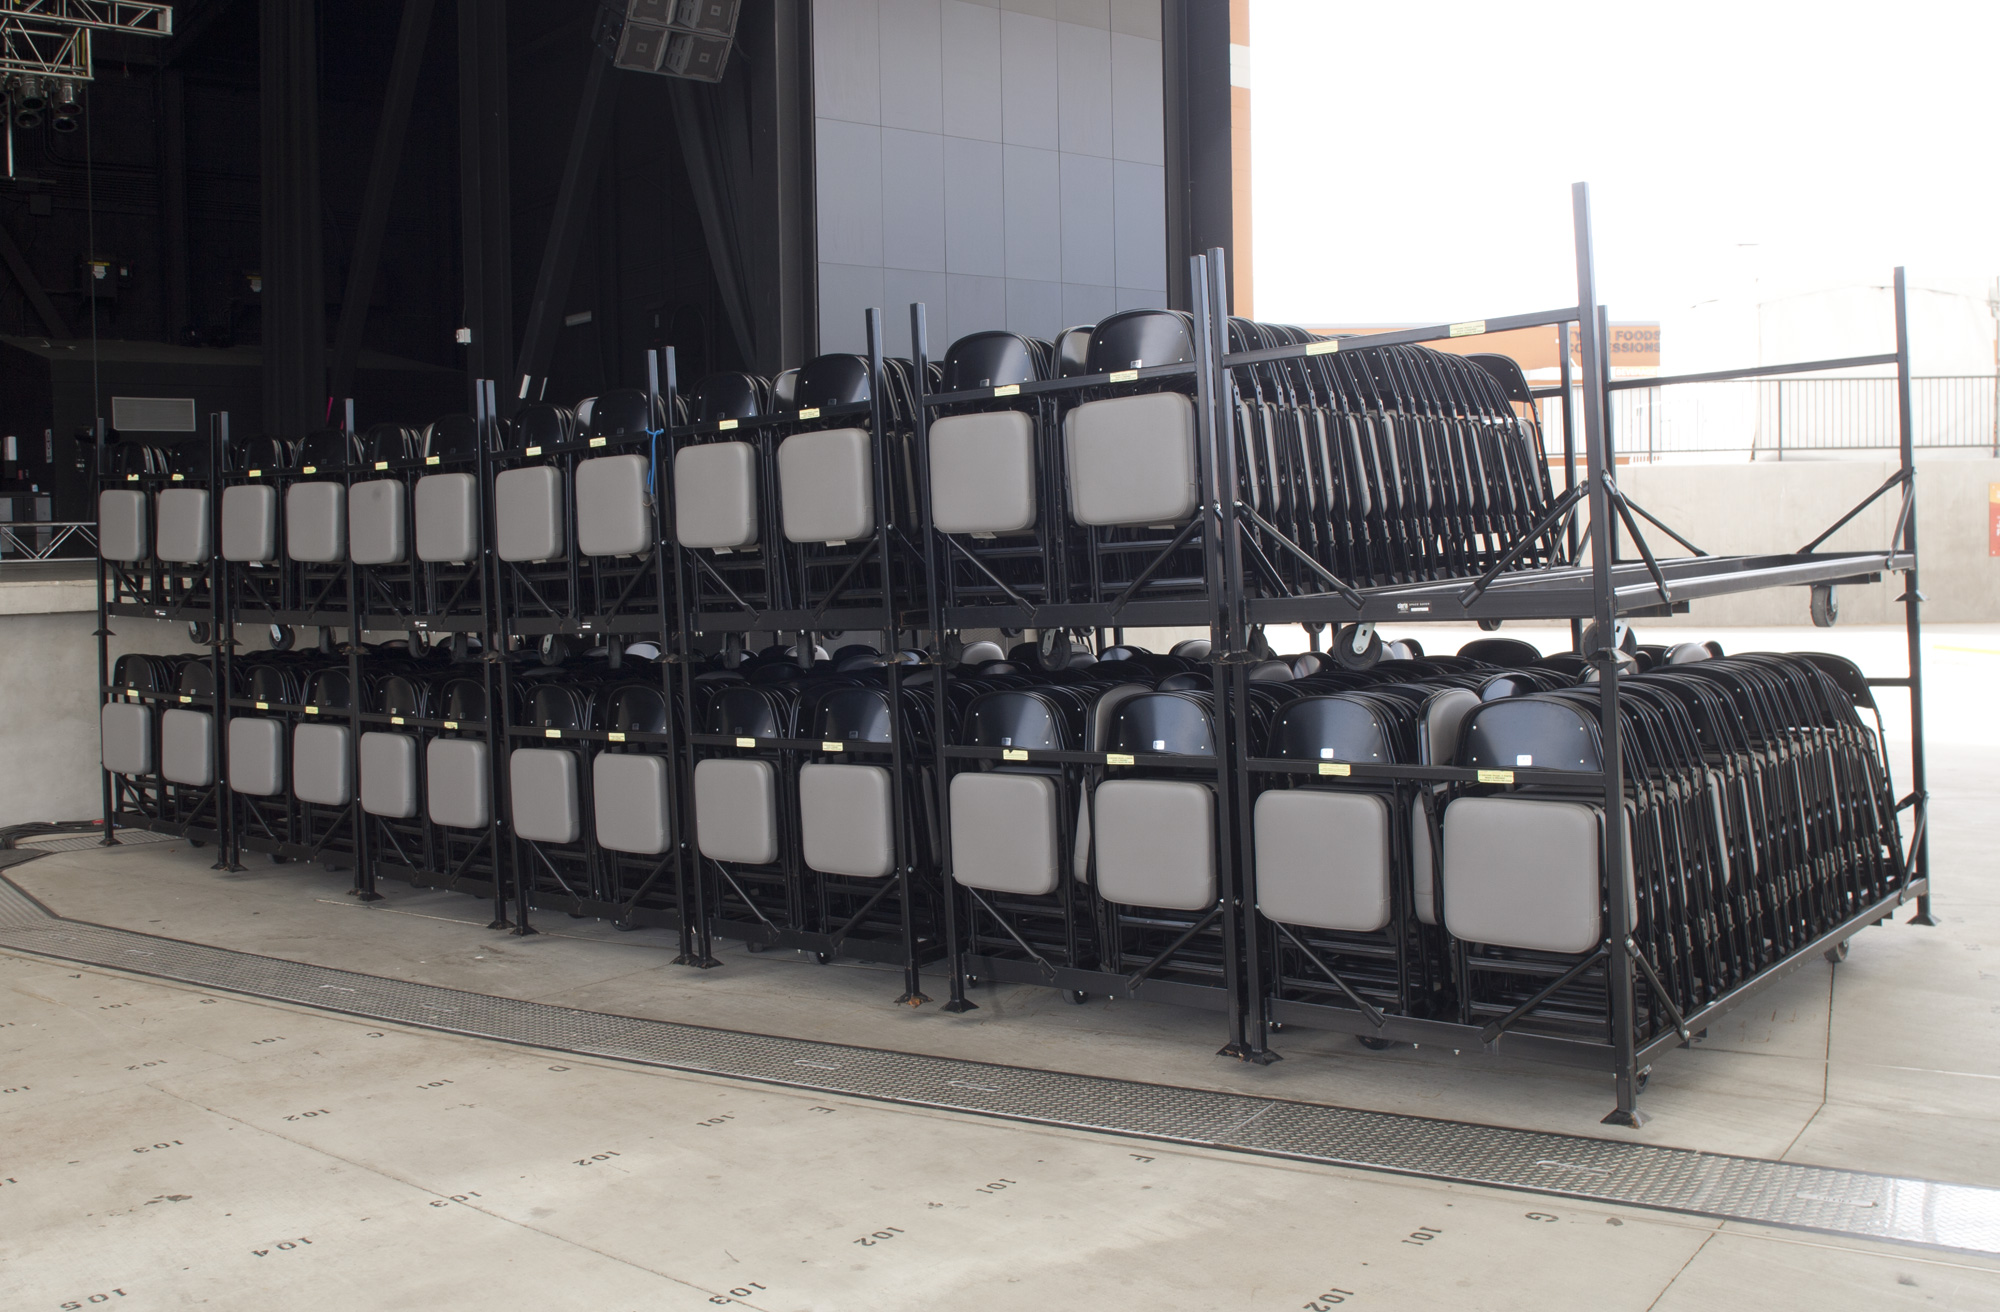 Storage Carts  Made to keep your portable folding chairs organized, easy to move, and maximize floor space.